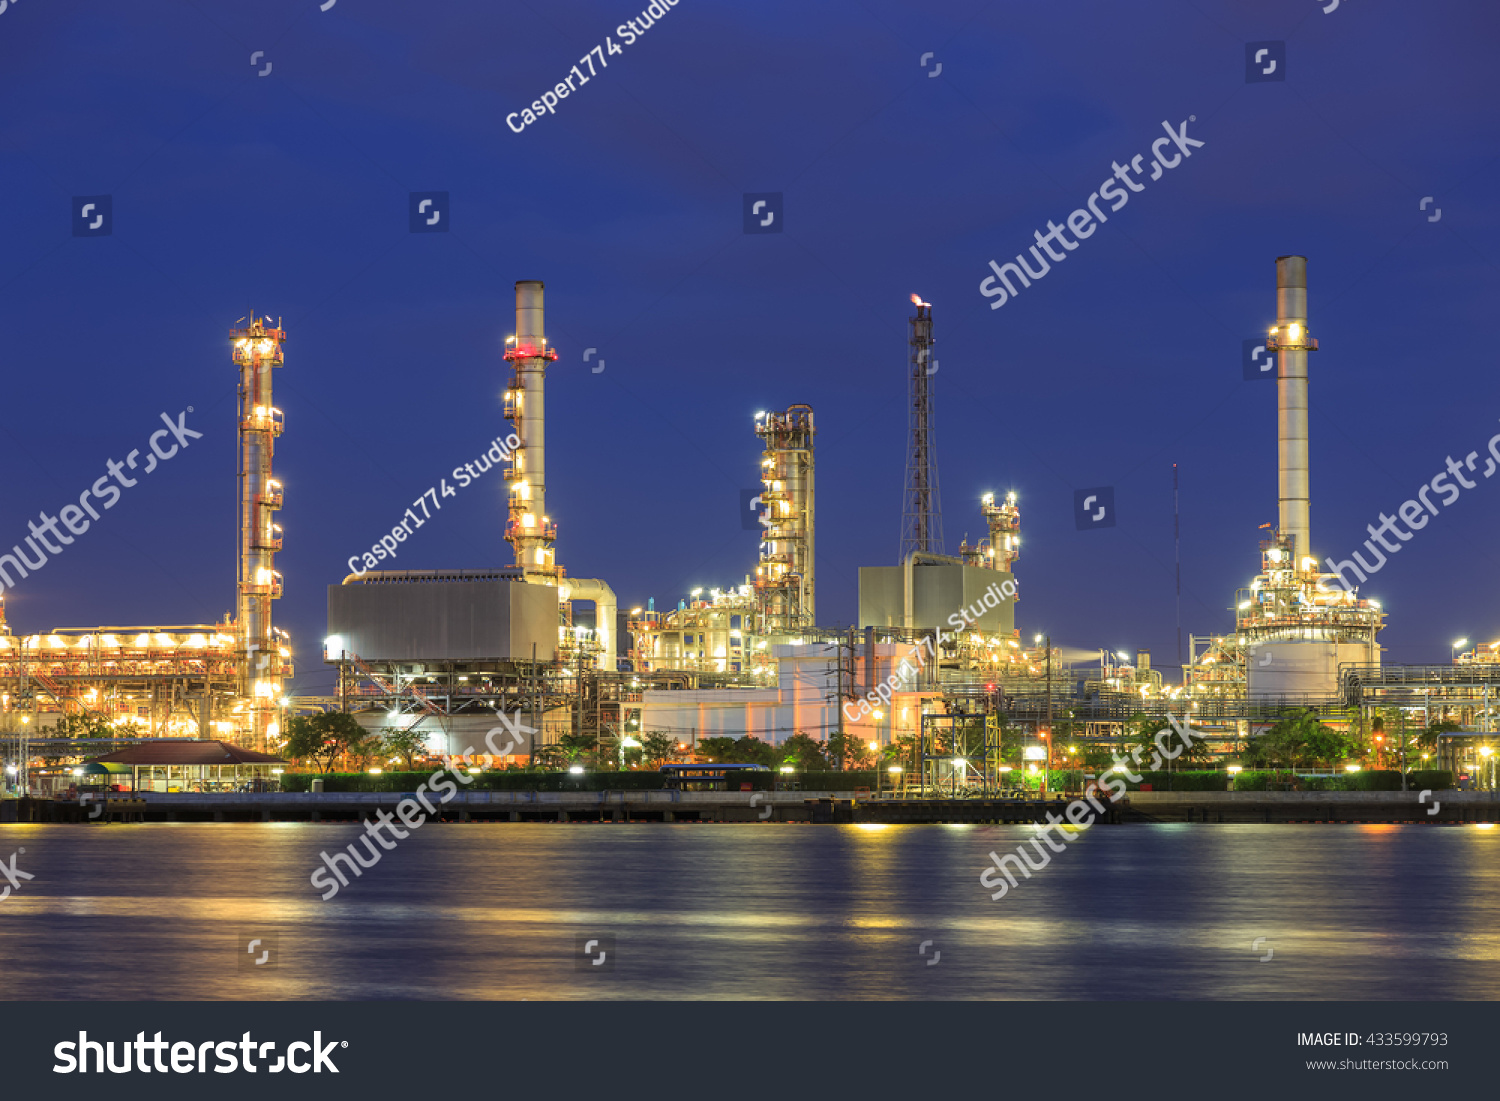 oil refinery plant with water reflection light, at night | EZ Canvas